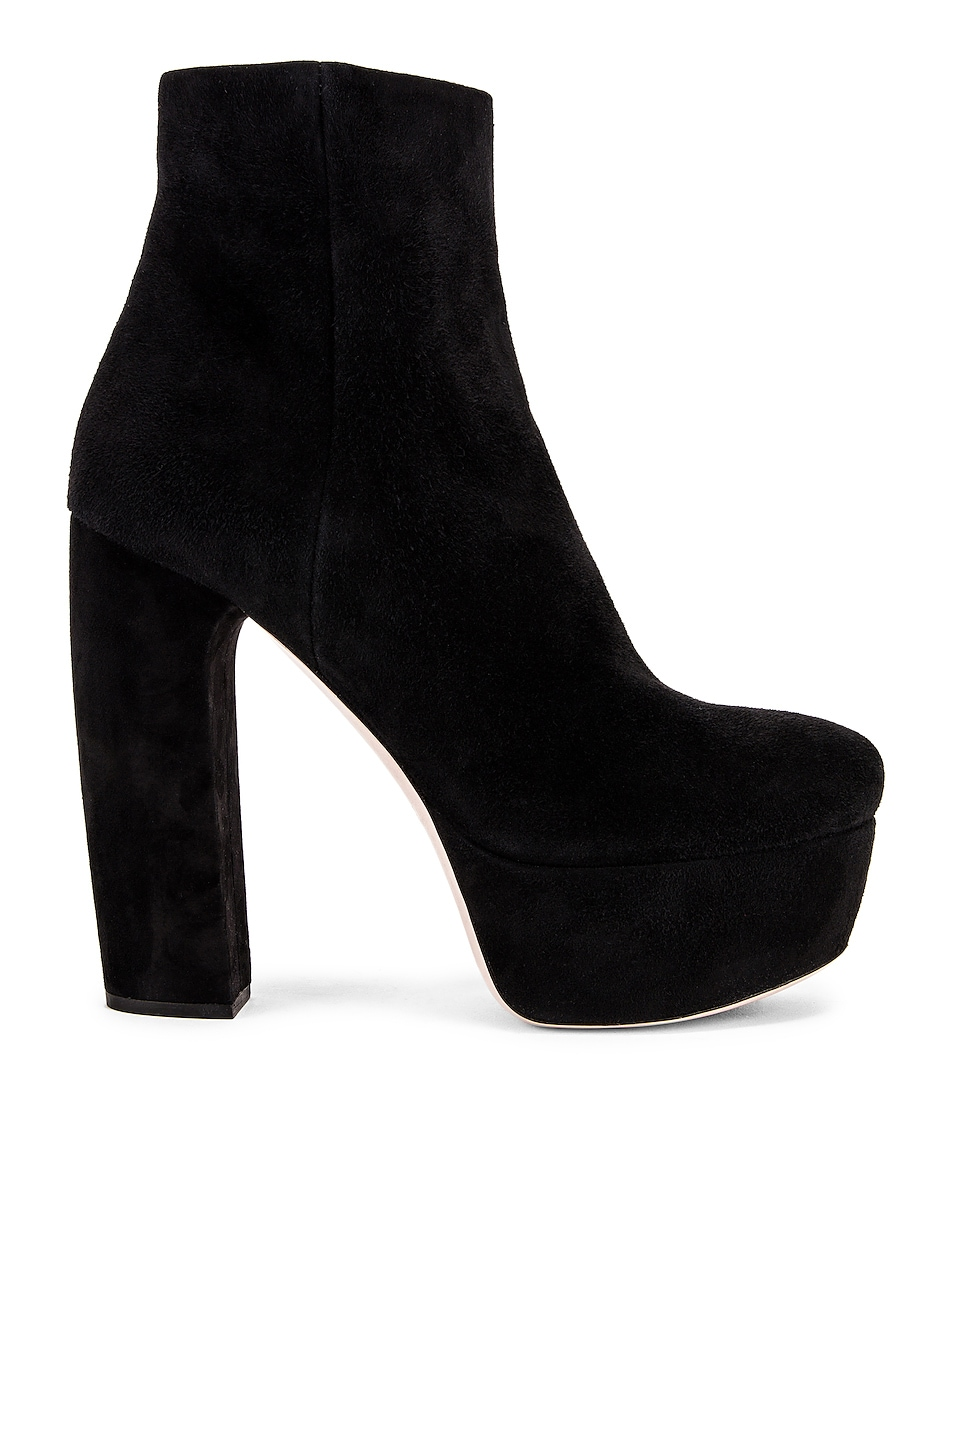 Image 1 of Miu Miu Chunky Platform Ankle Boots in Black